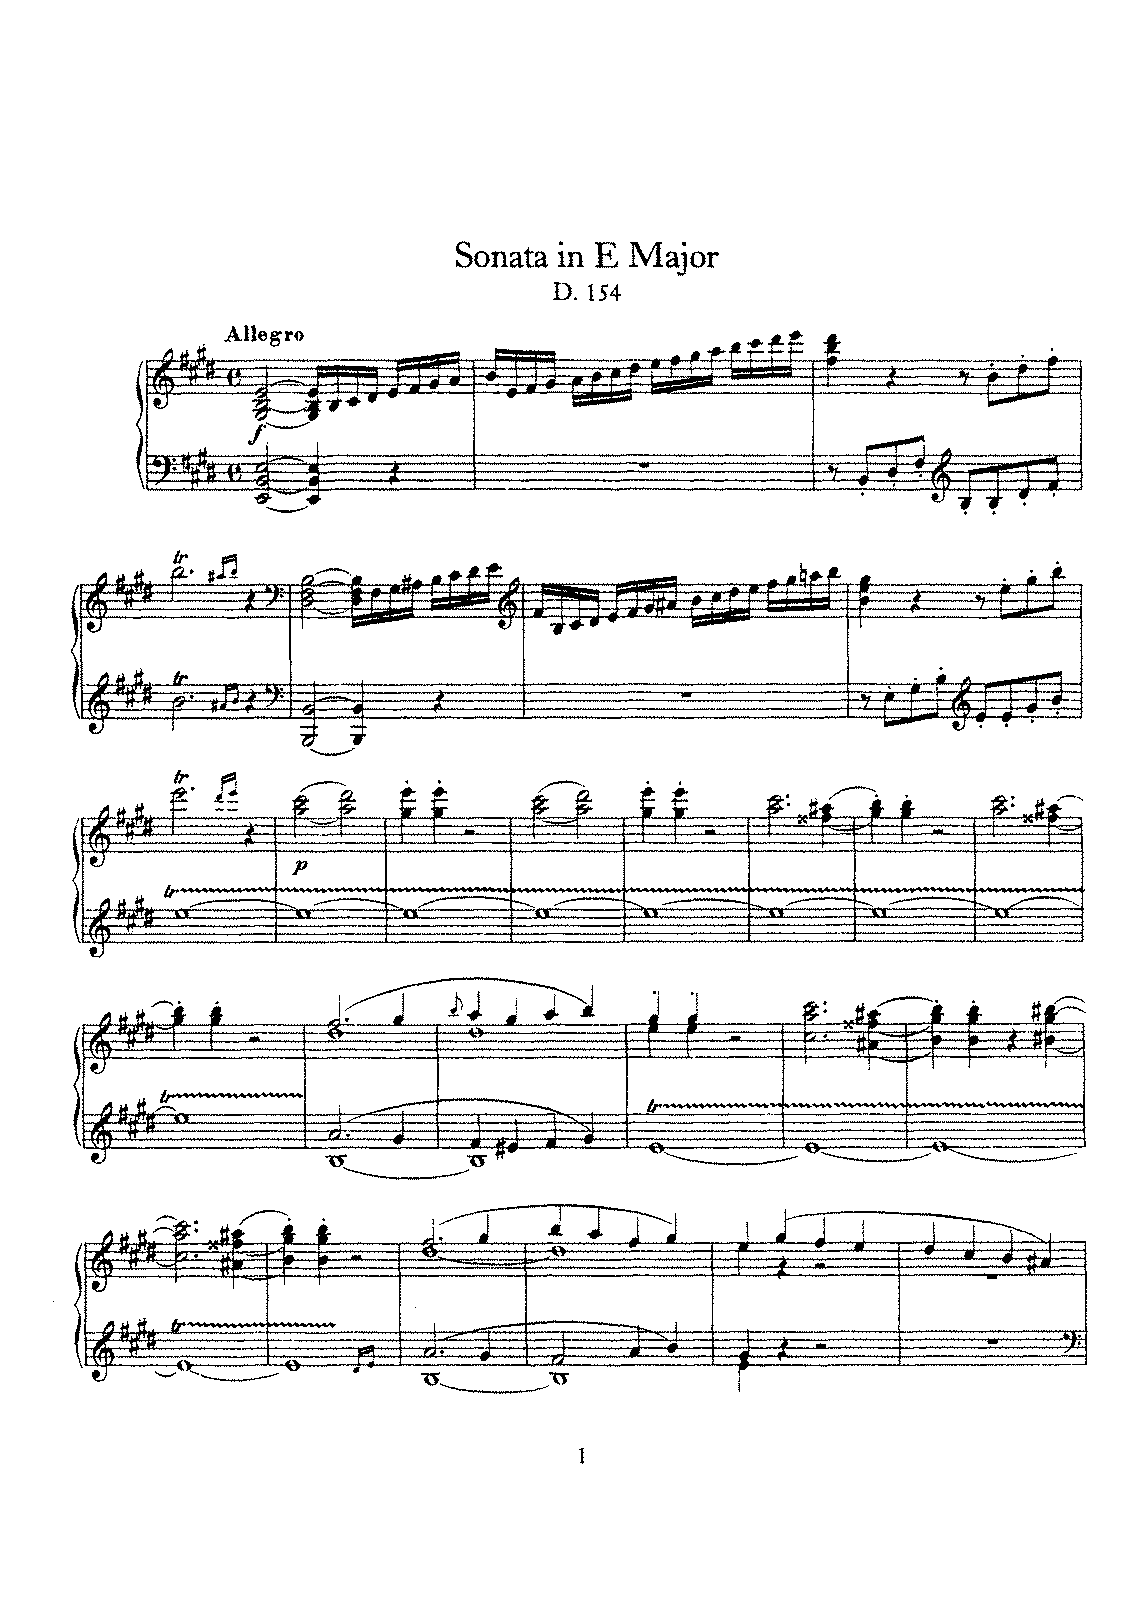 Schubert - D.154 - Piano Sonata in E Major.pdf